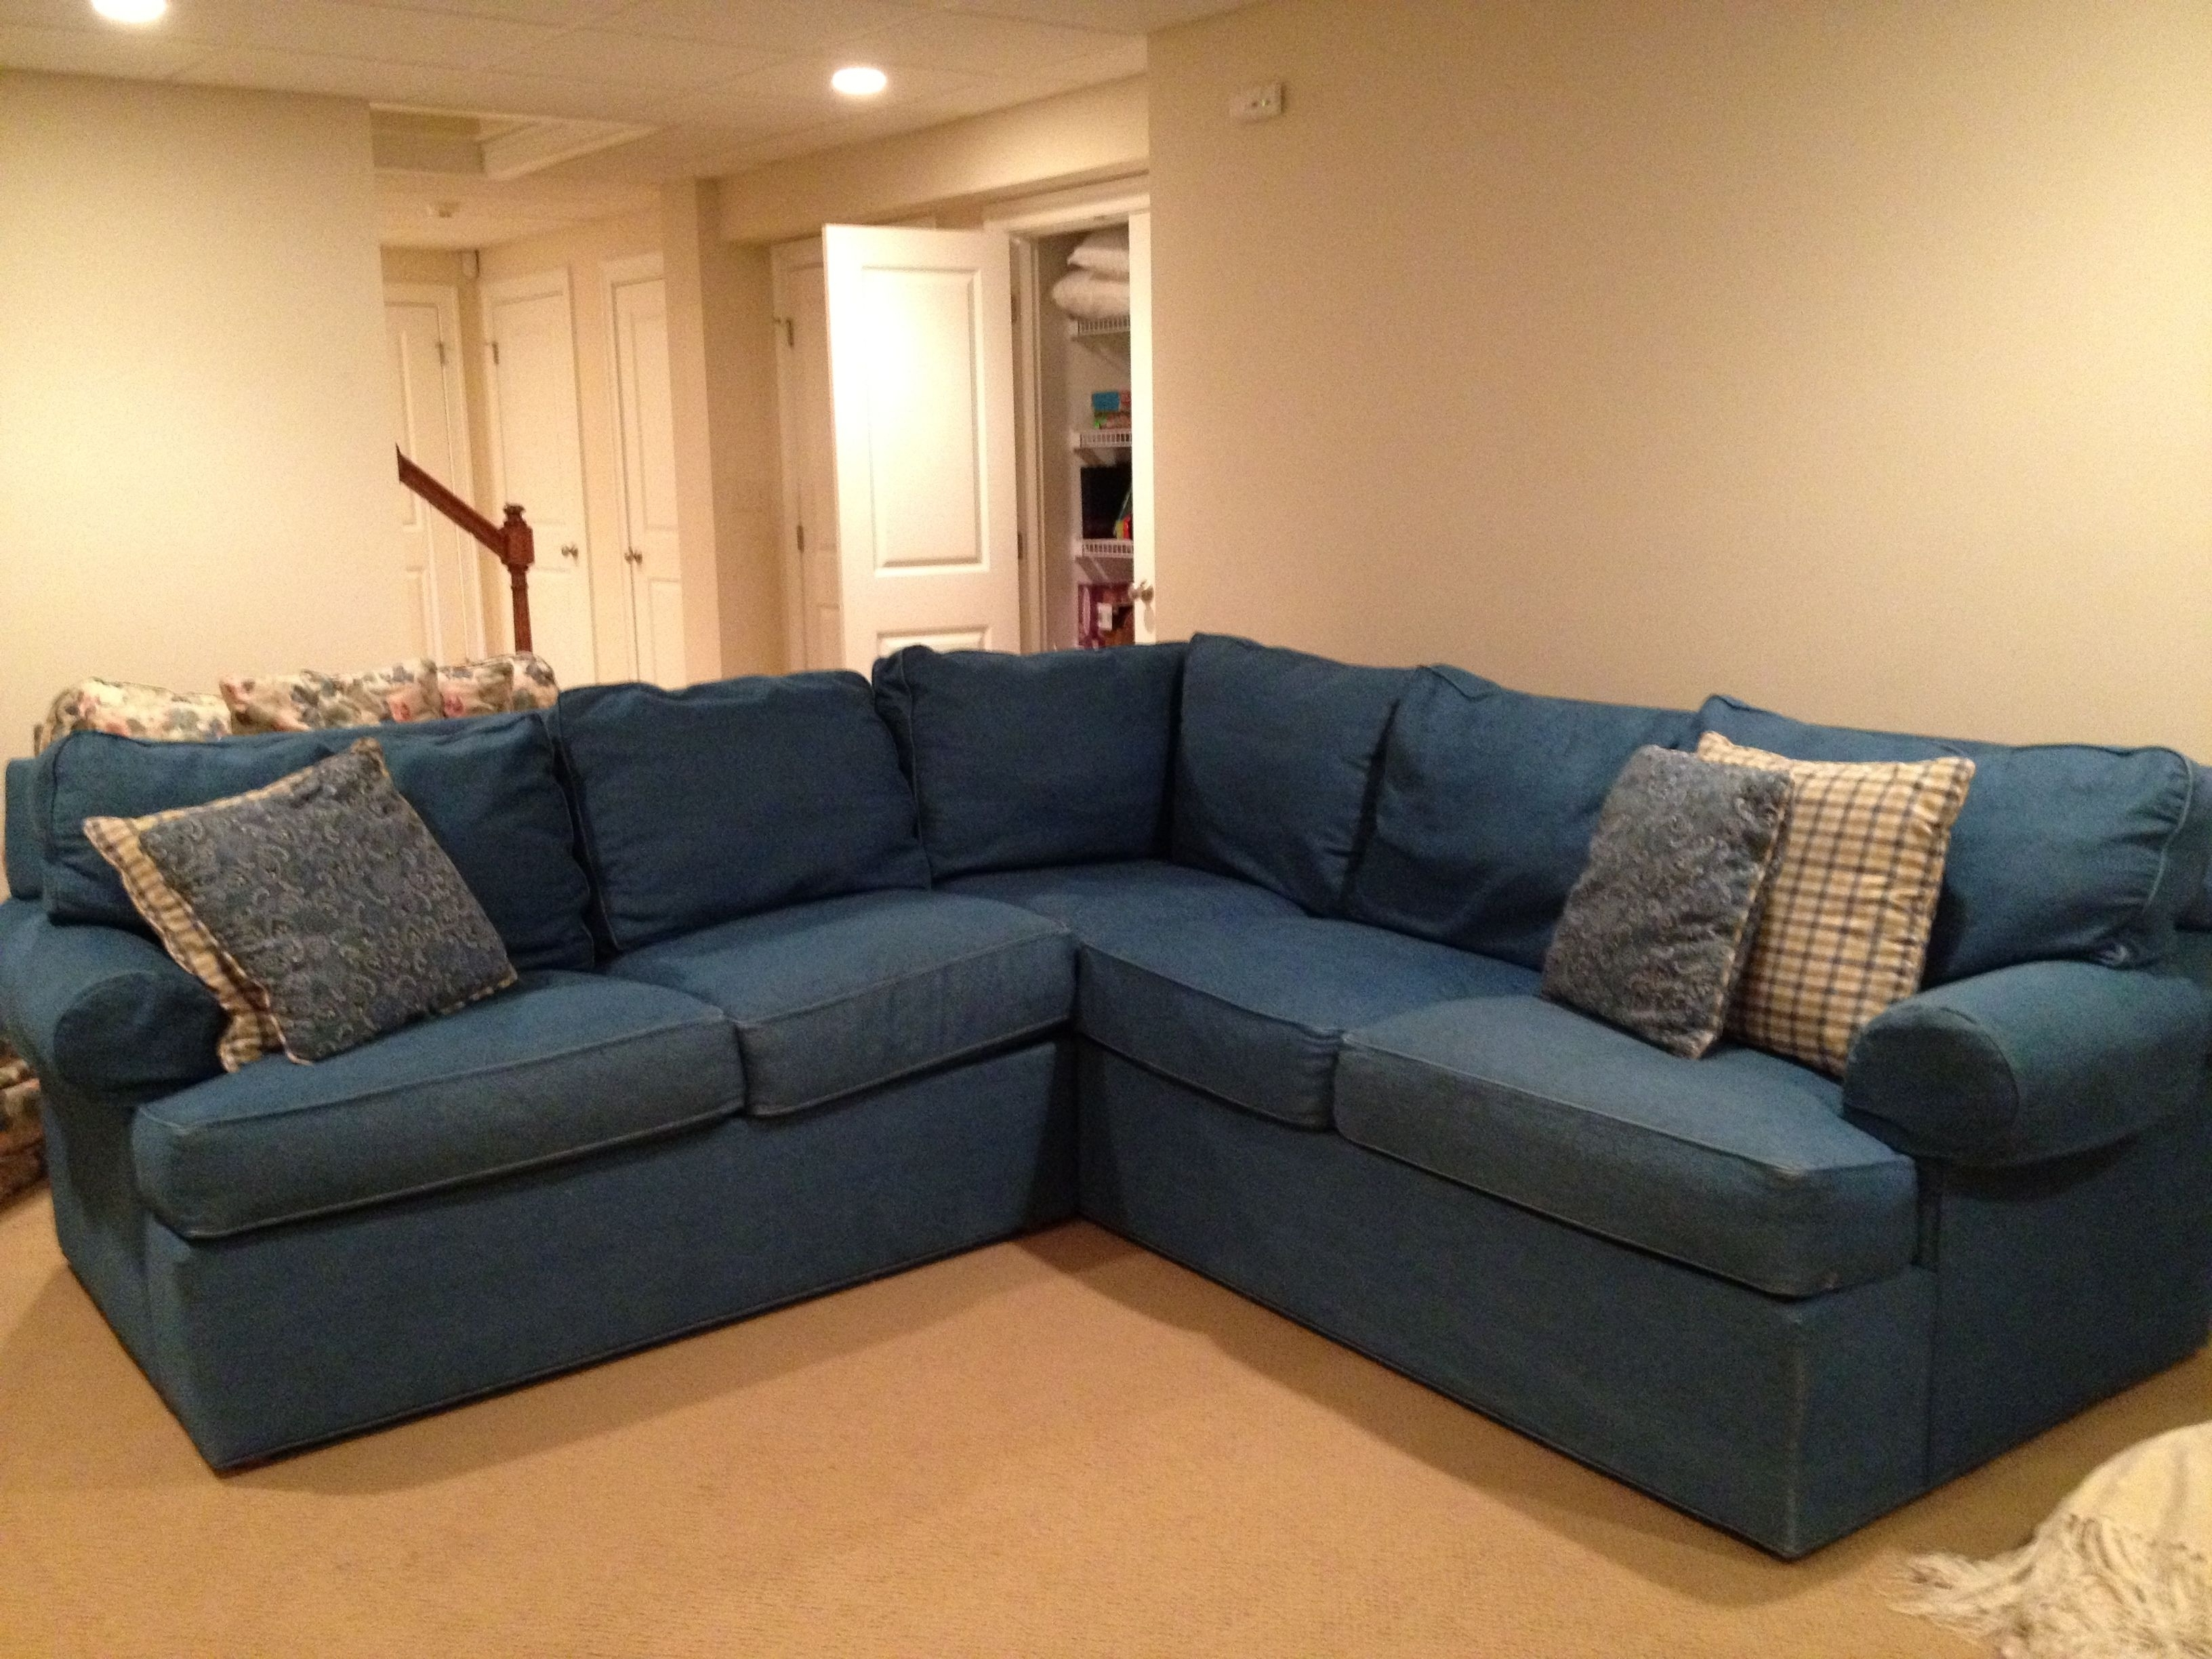 Most Recent Sofa Right Sectional Braxton Java Arm Facing Hand Pb Basic Chaise Inside Regina Sectional Sofas (View 7 of 15)